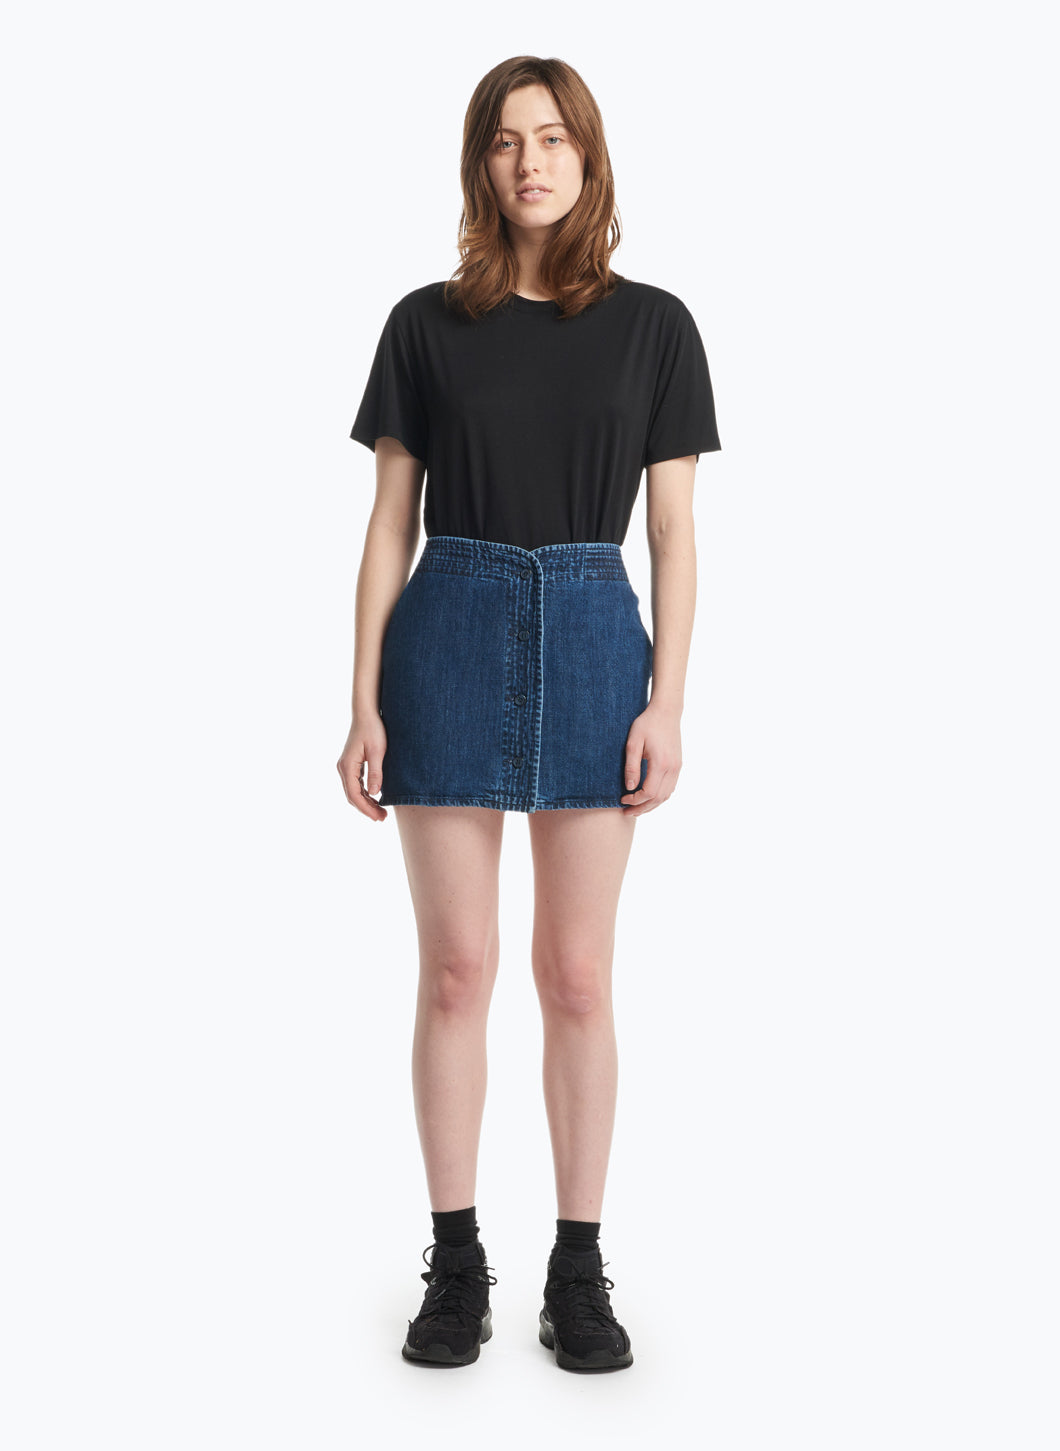 Judo Miniskirt in Stoned Denim